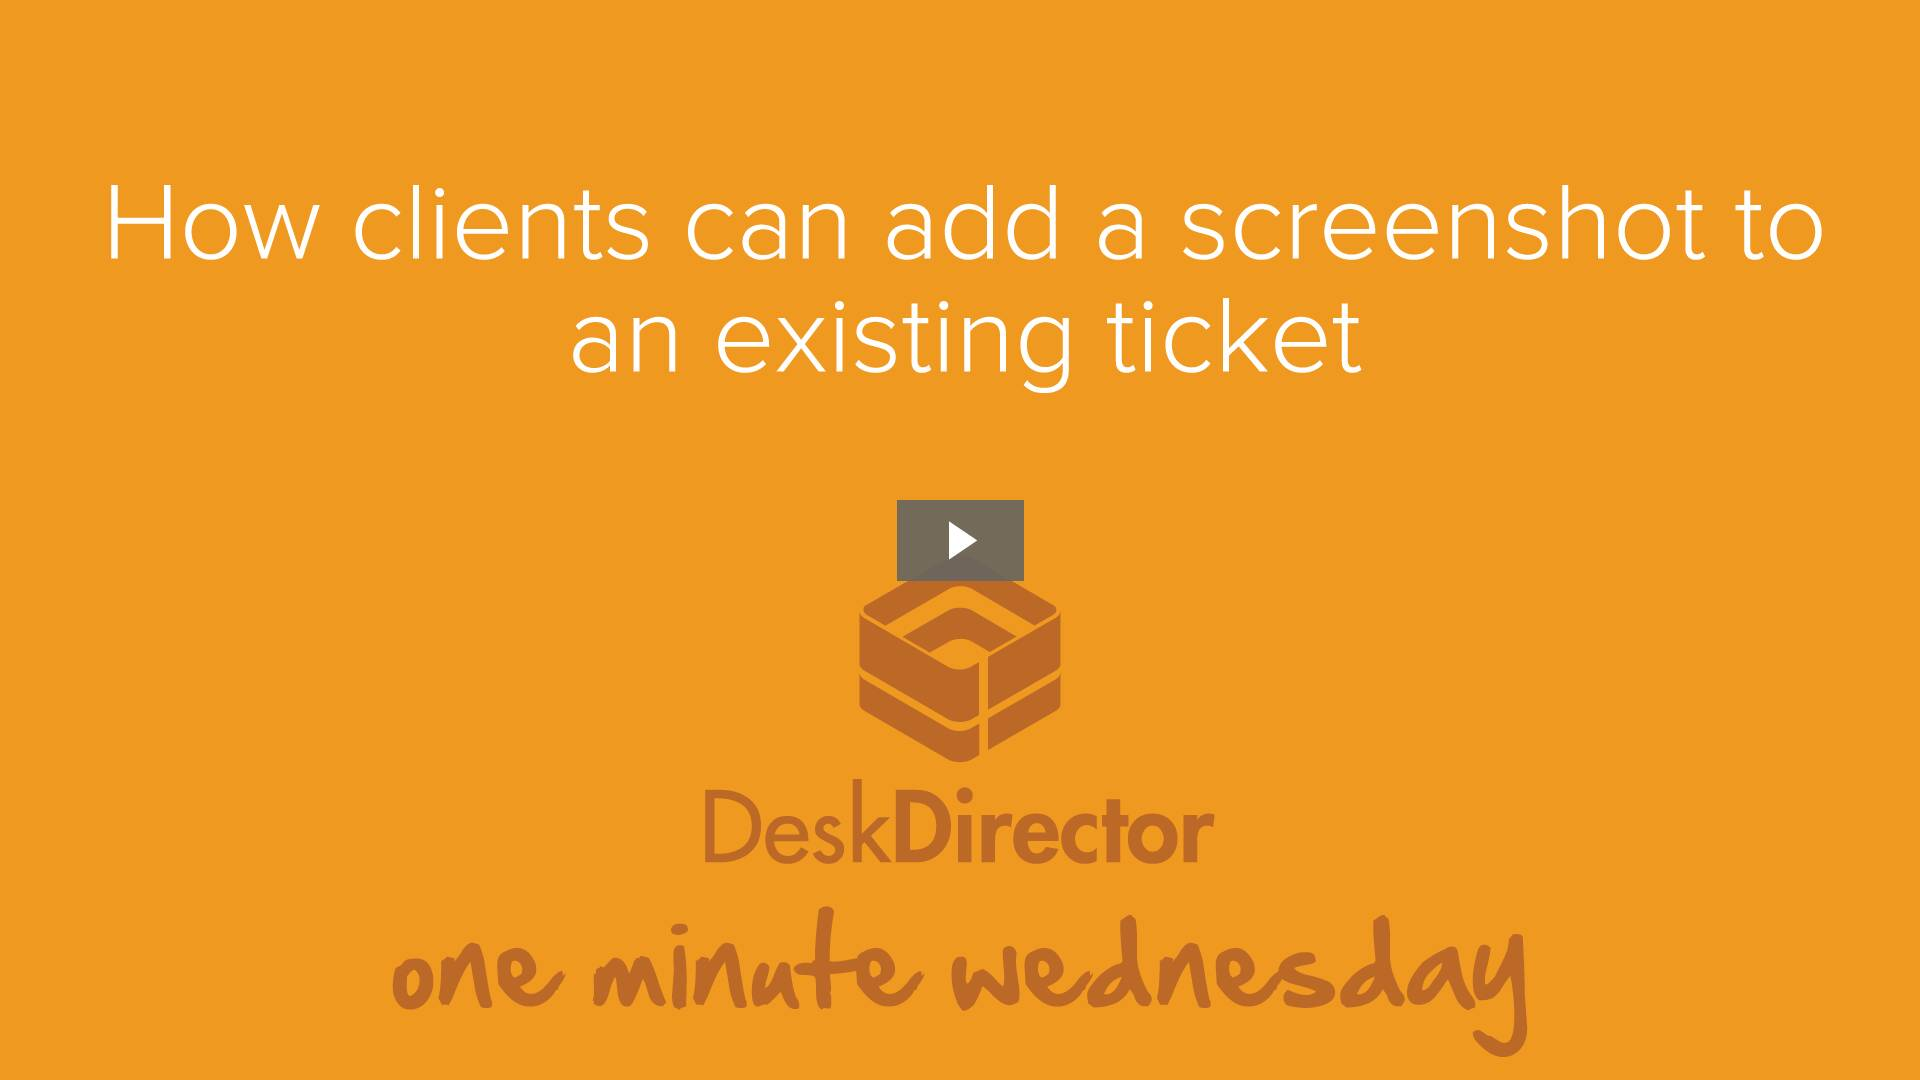 Adding a screenshot to an existing ticket